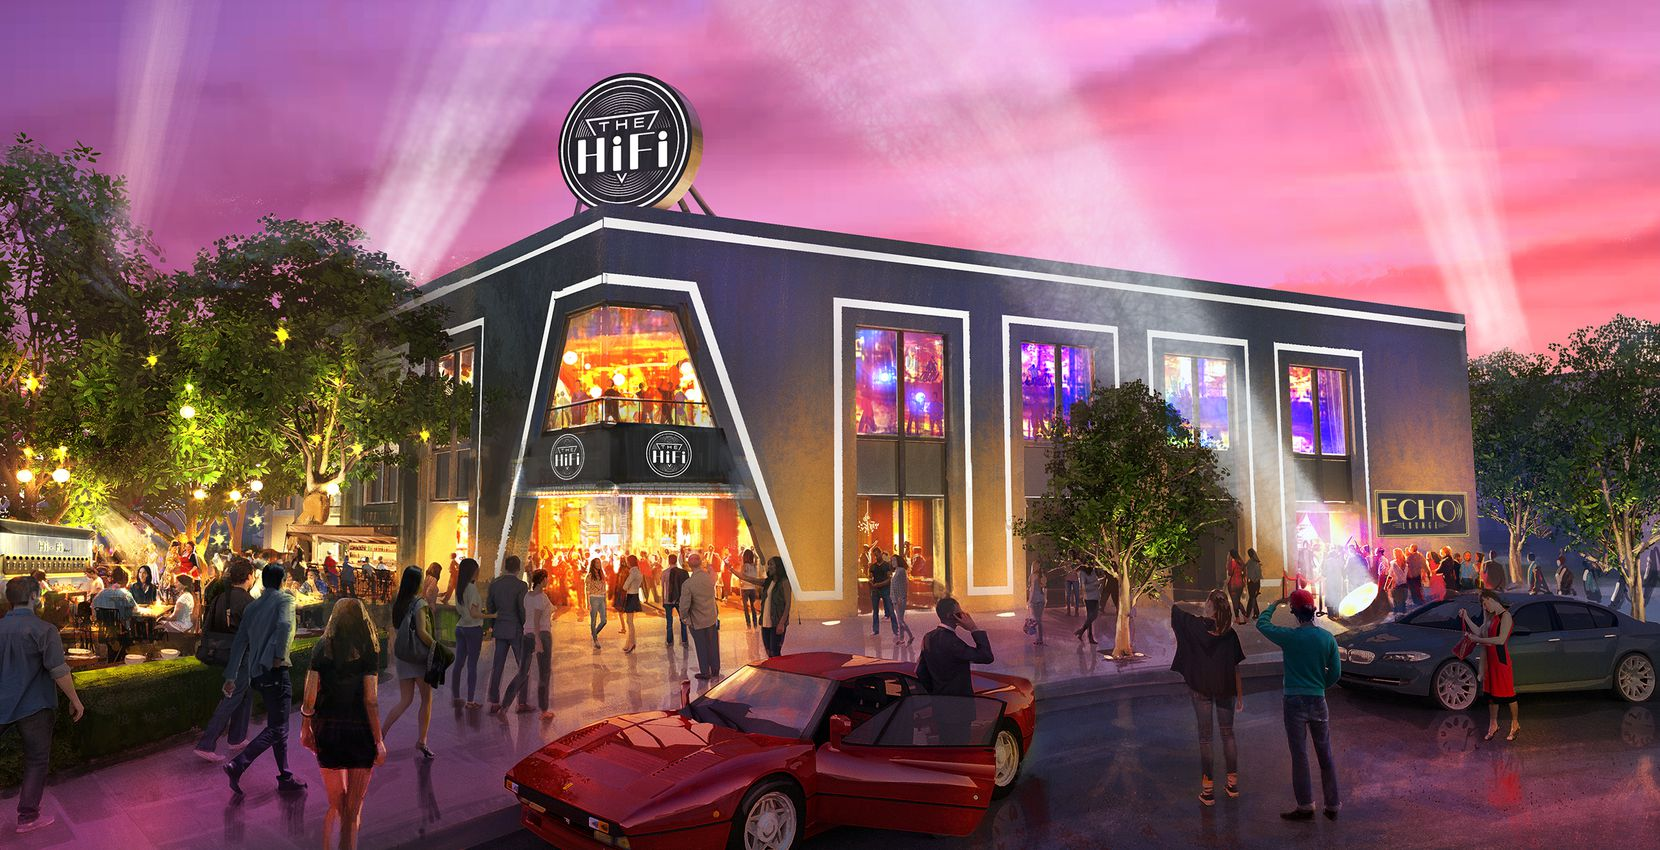 The exterior of The HiFi Dallas, now a Design District warehouse, is set to open in May.